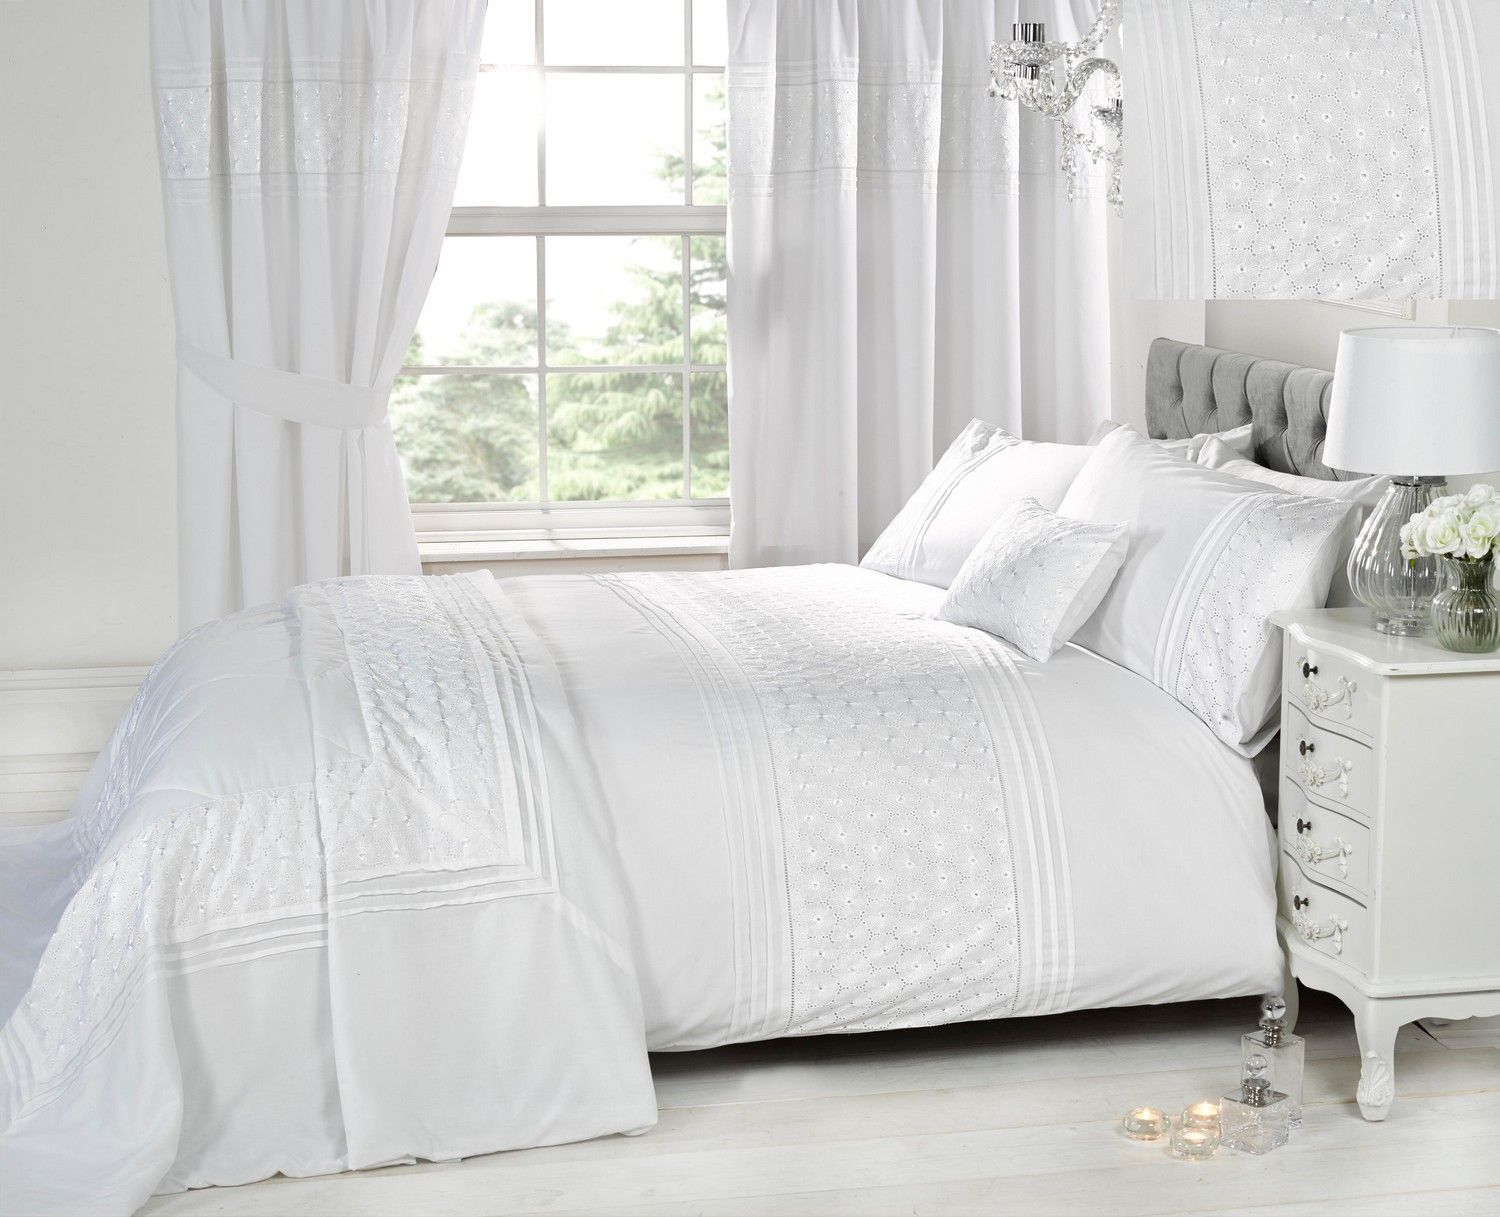 Love the clean look of all white in the bedroom | Home Design Ideas ...